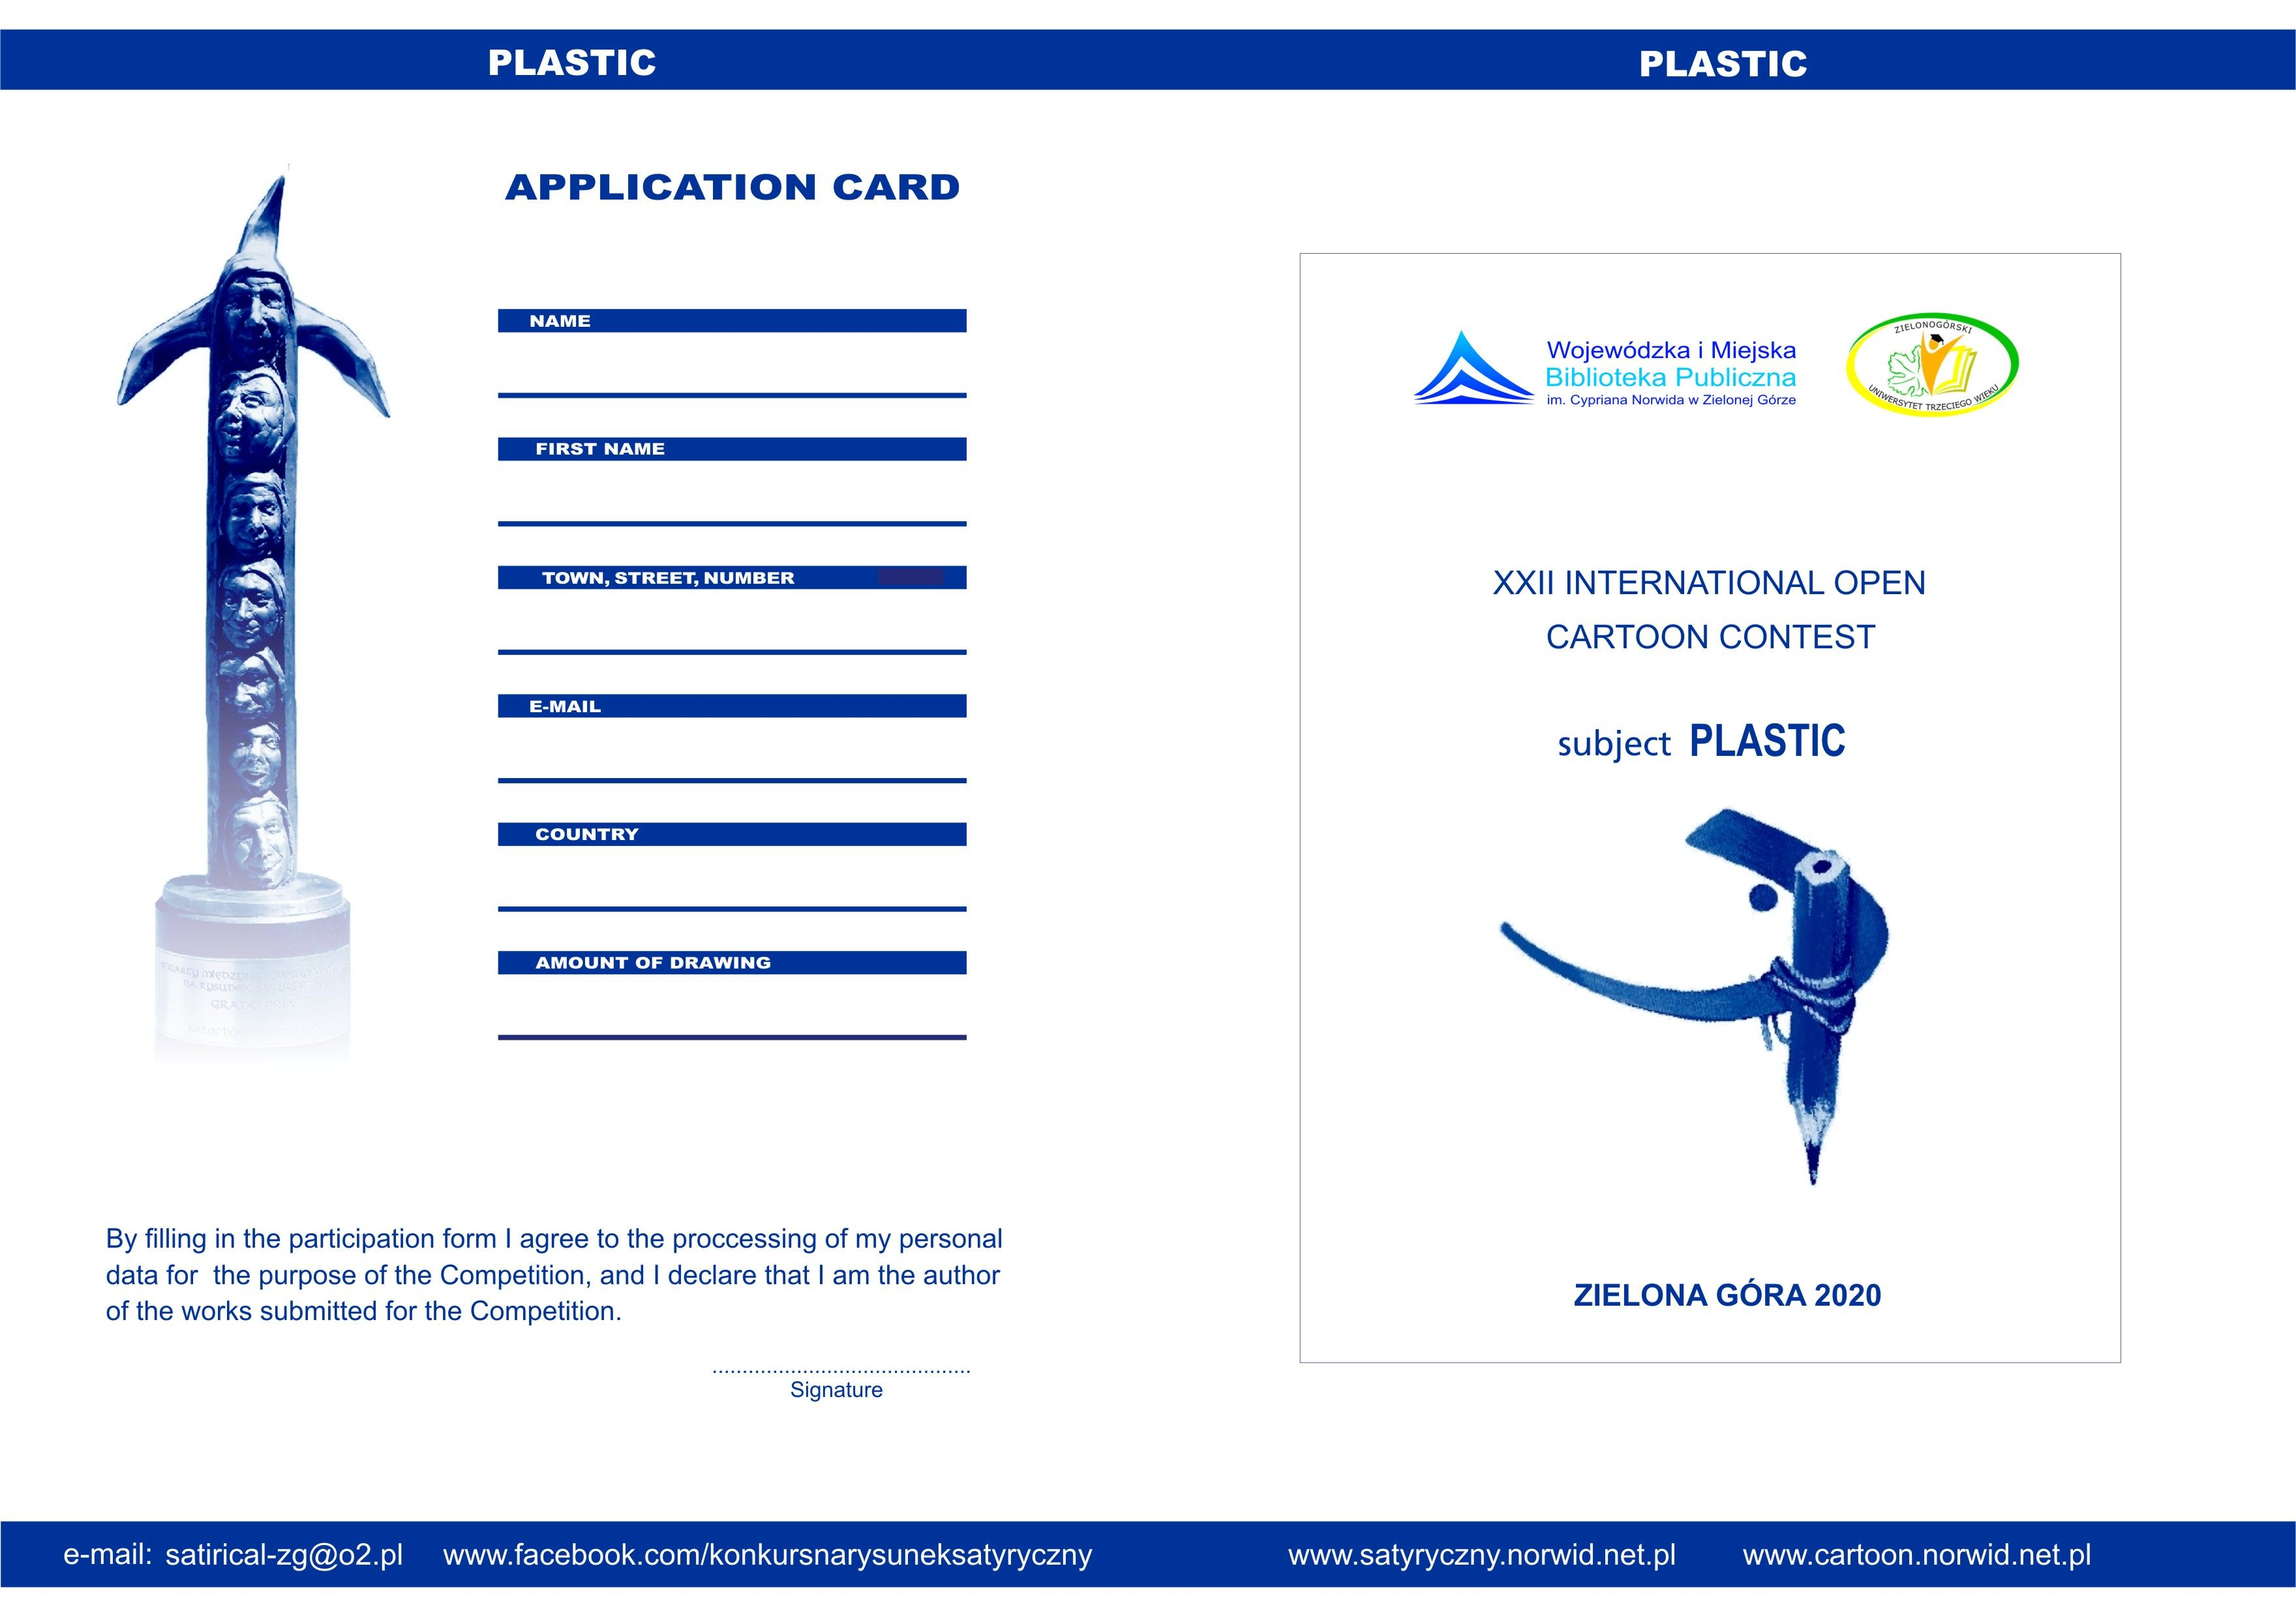 application card-PLASTIC